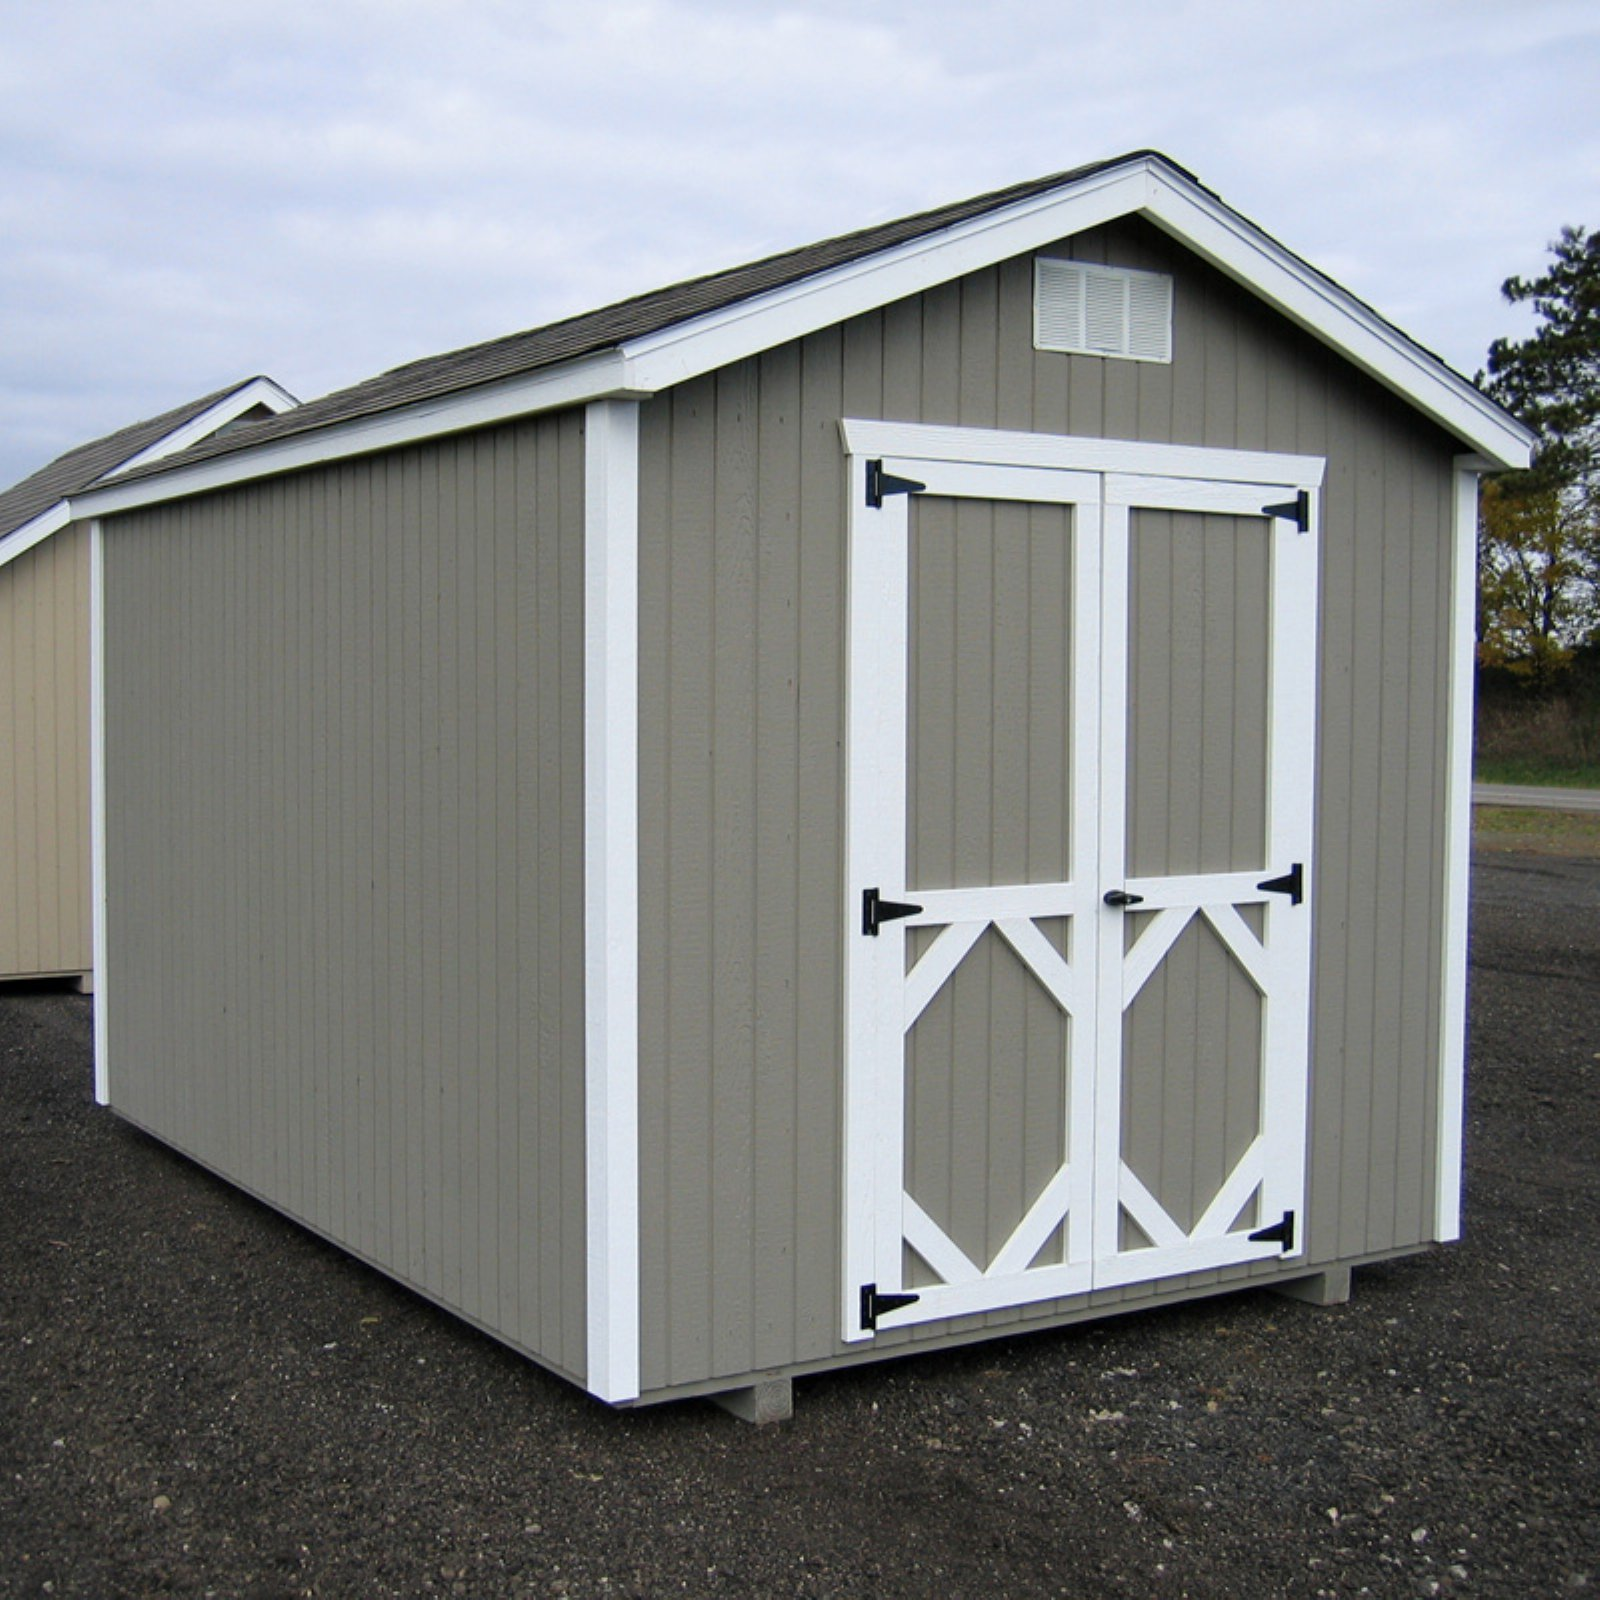 Little Cottage 8 x 8 ft. Classic Wood Gable Panelized Storage Shed